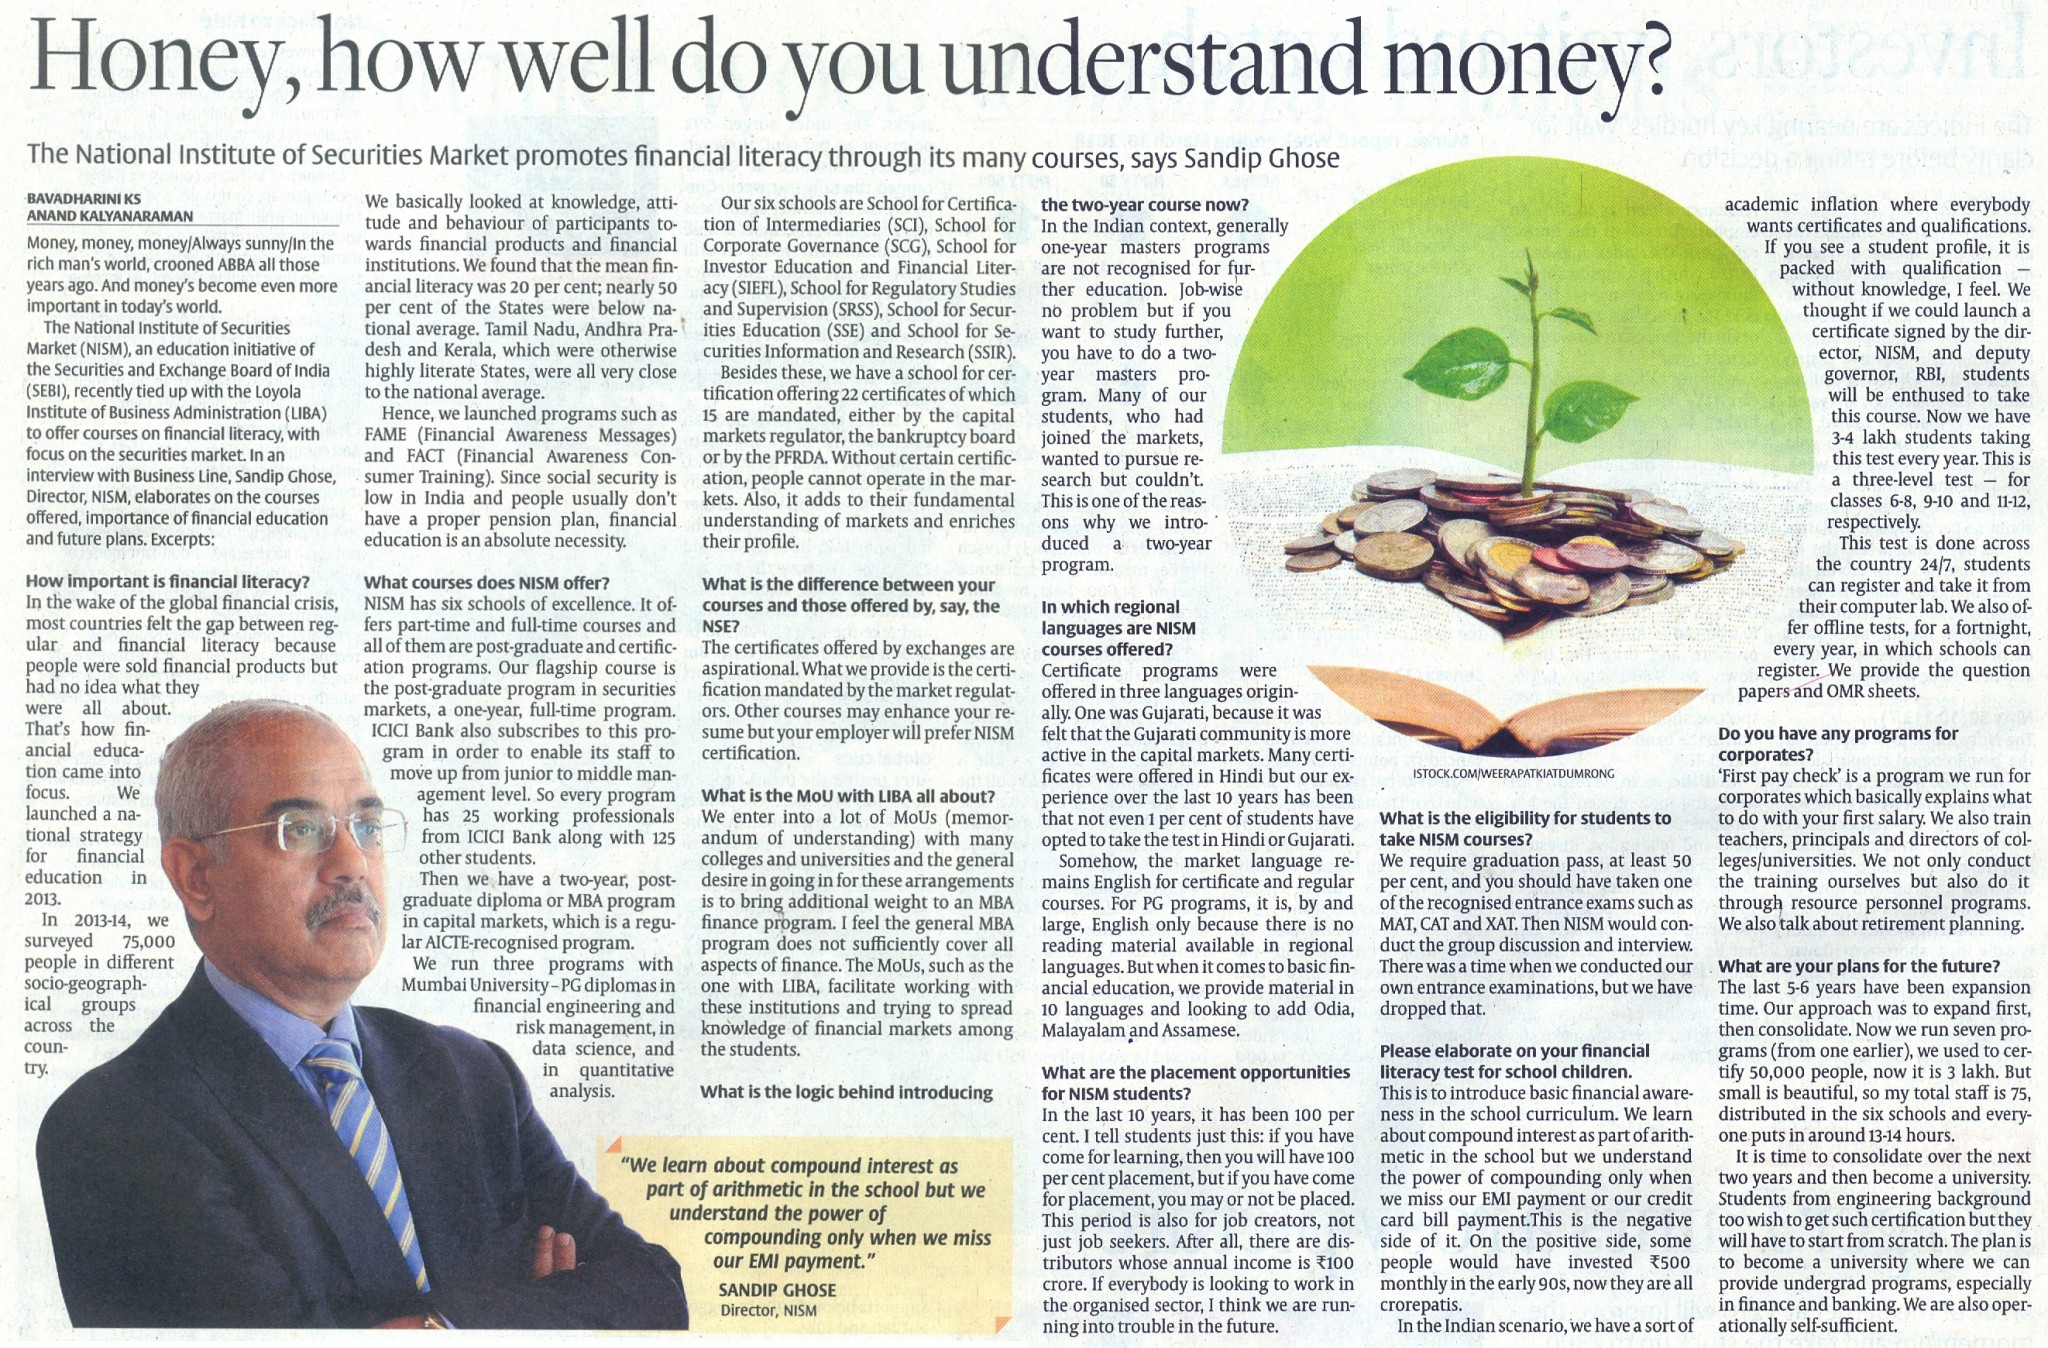 The Hindu - Business Line - 02.04.2018